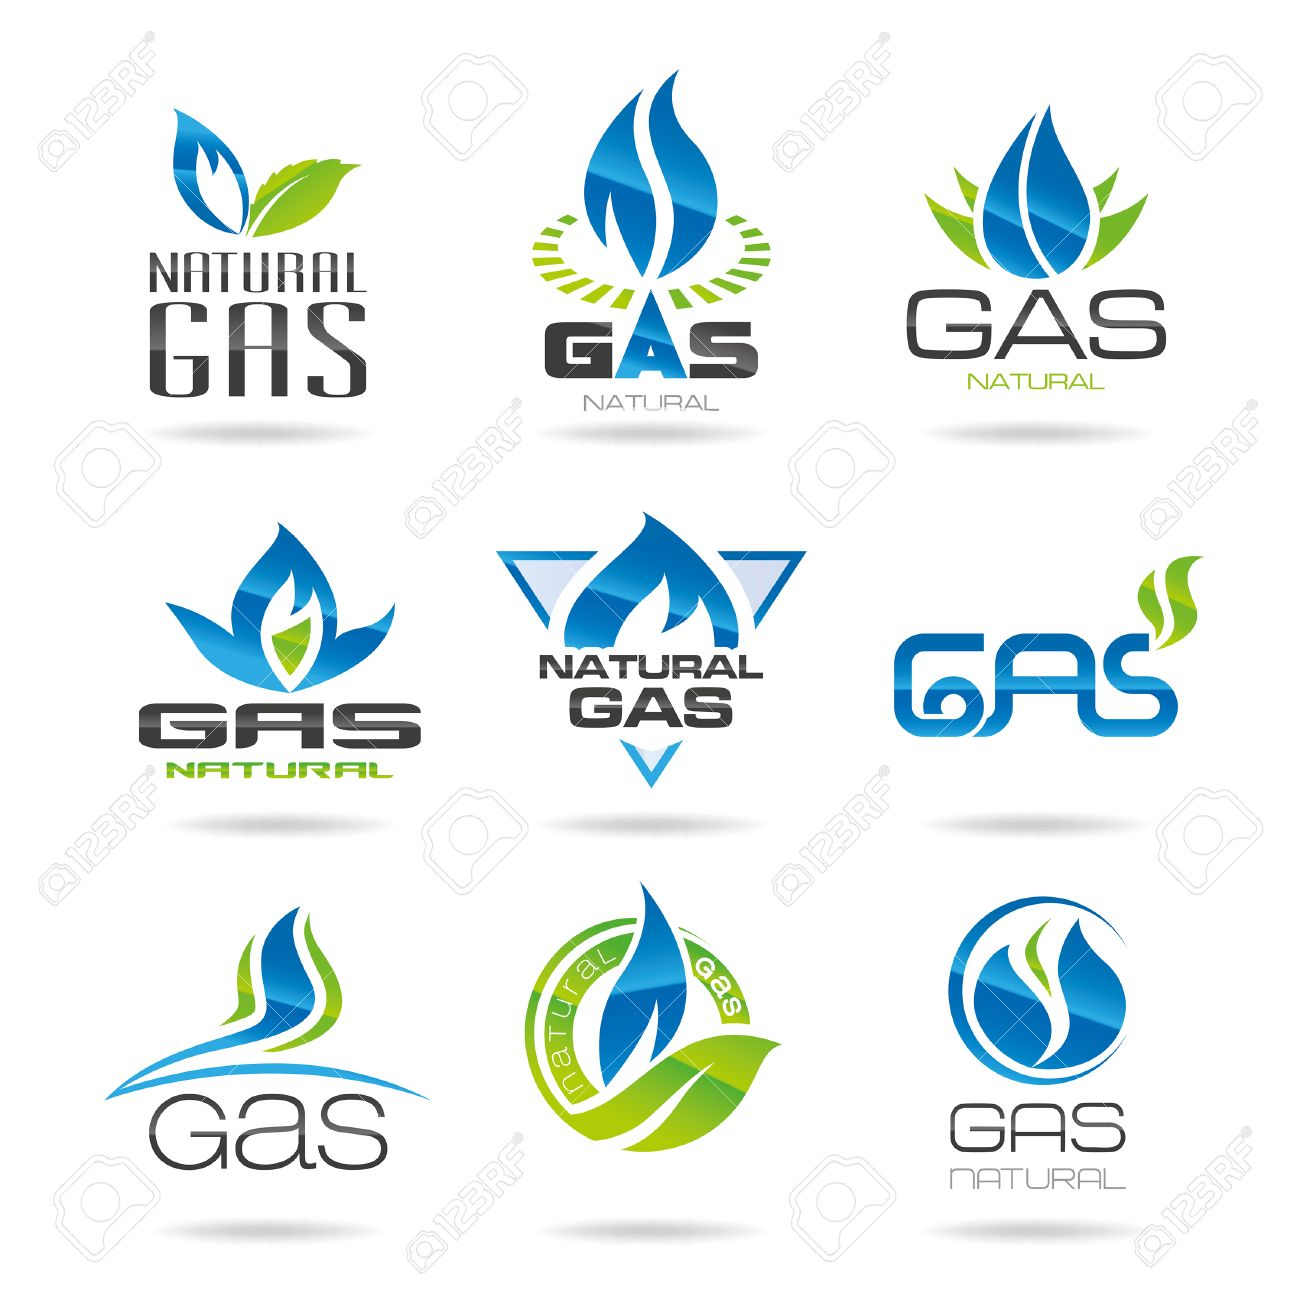 Natural gas stock symbol gallery symbol and sign ideas gas industry symbols icon royalty free cliparts vectors and gas industry symbols icon stock vector 27565541 buycottarizona Choice Image